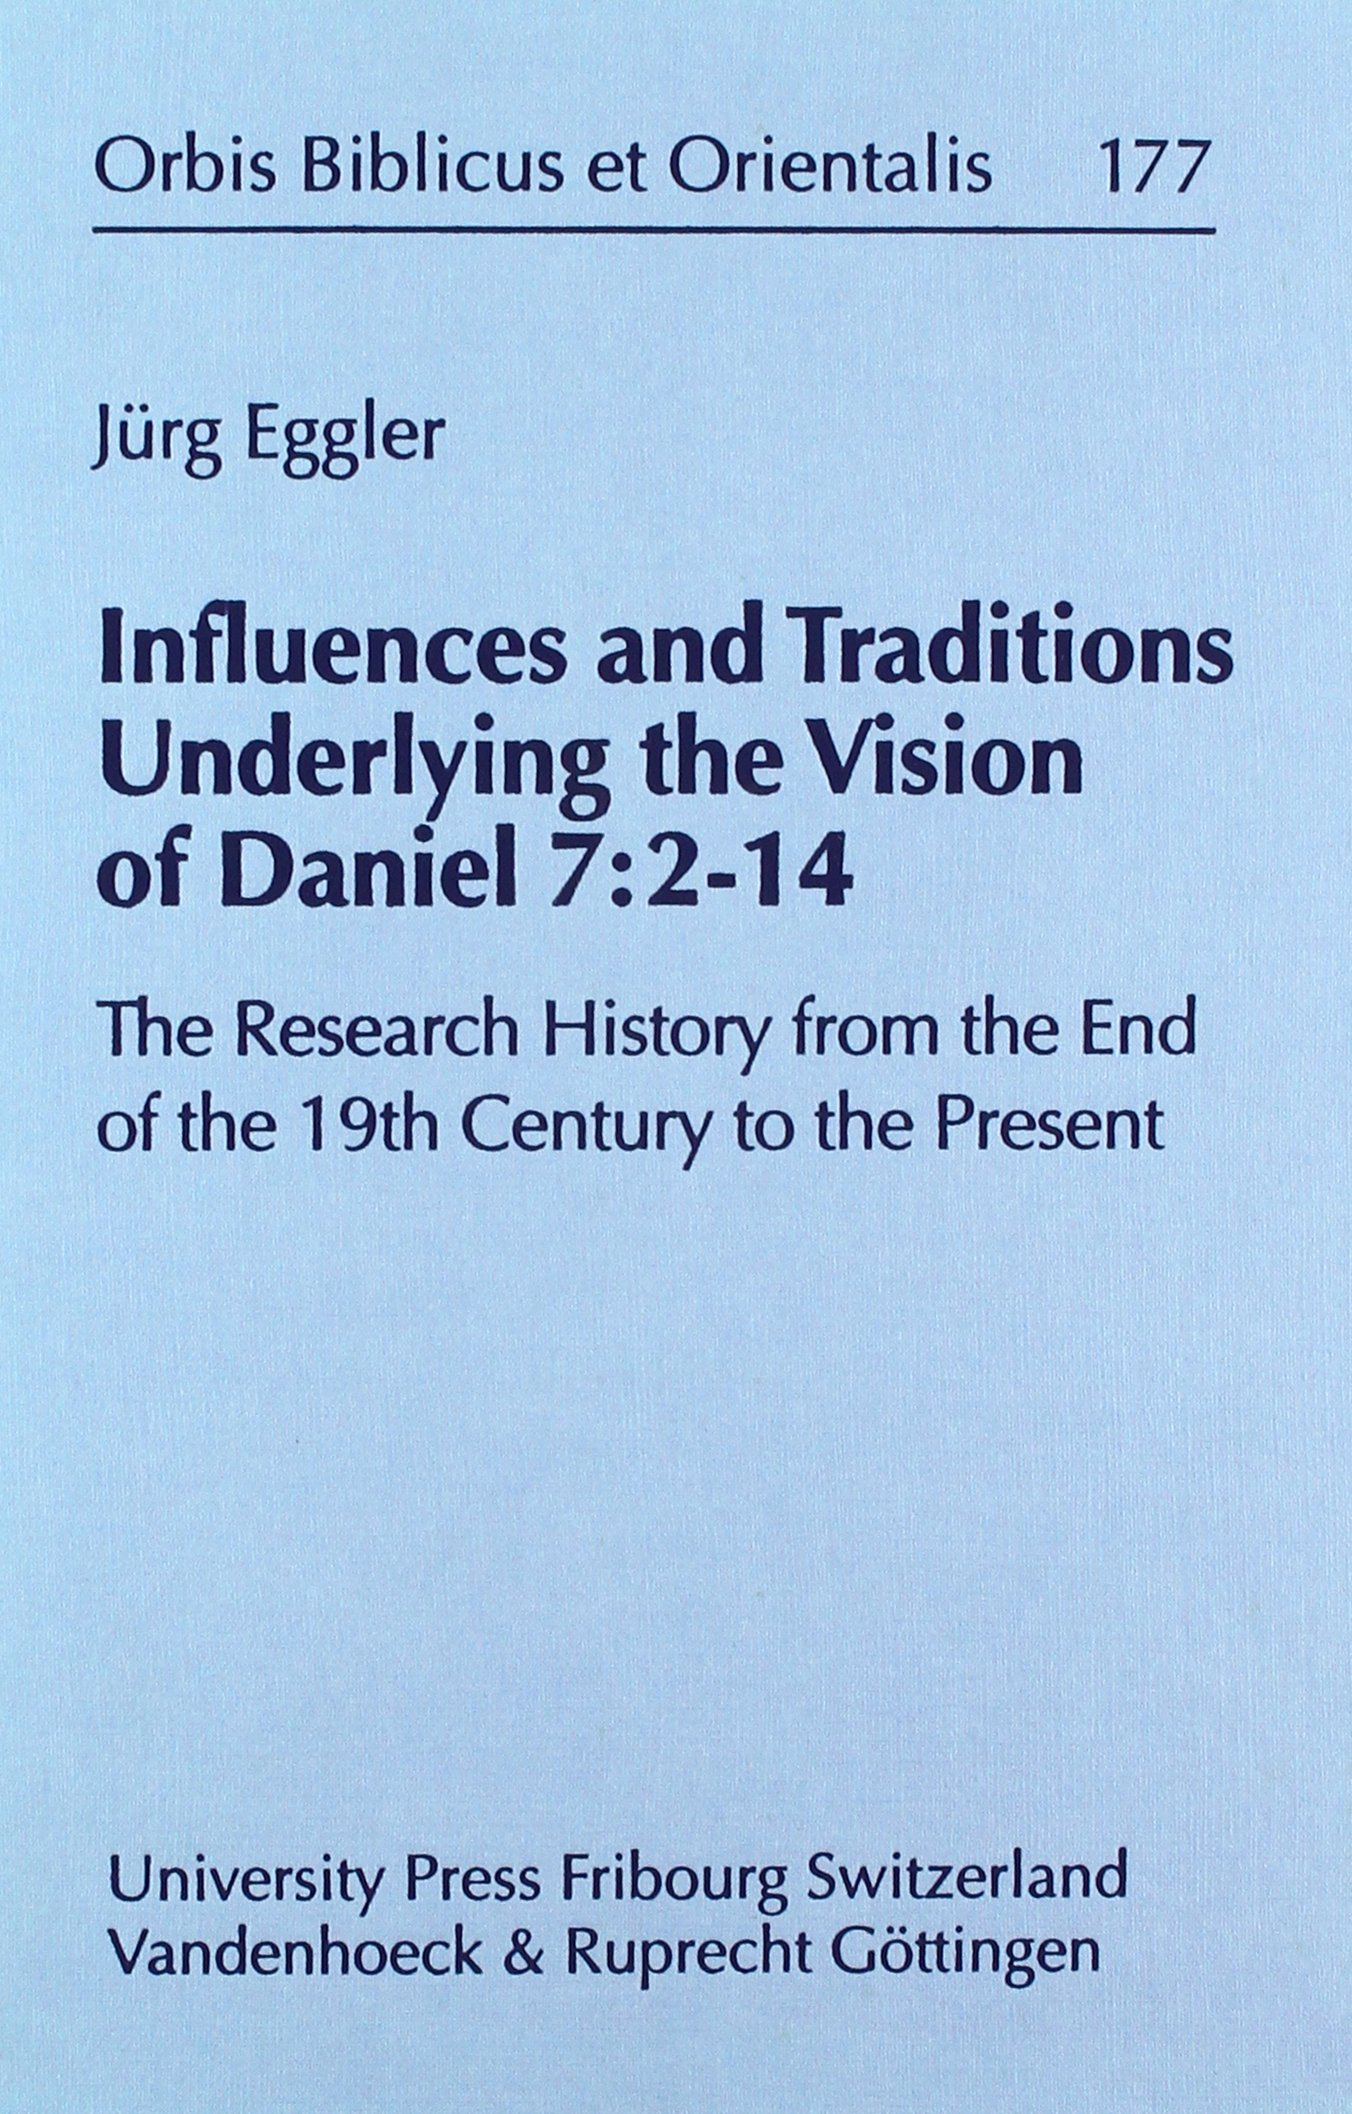 Download Influences and Traditions Underlying the Vision of Daniel 7: 2-14: The Research History form the End of the 19th Century to the Present (Orbis Biblicus et Orientalis) PDF